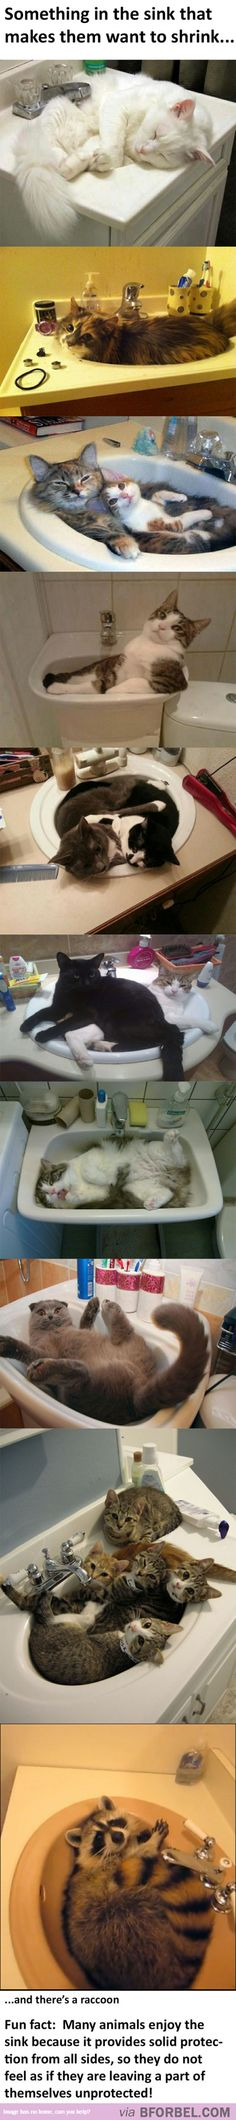 There's Something About The Sink That Cats Love…